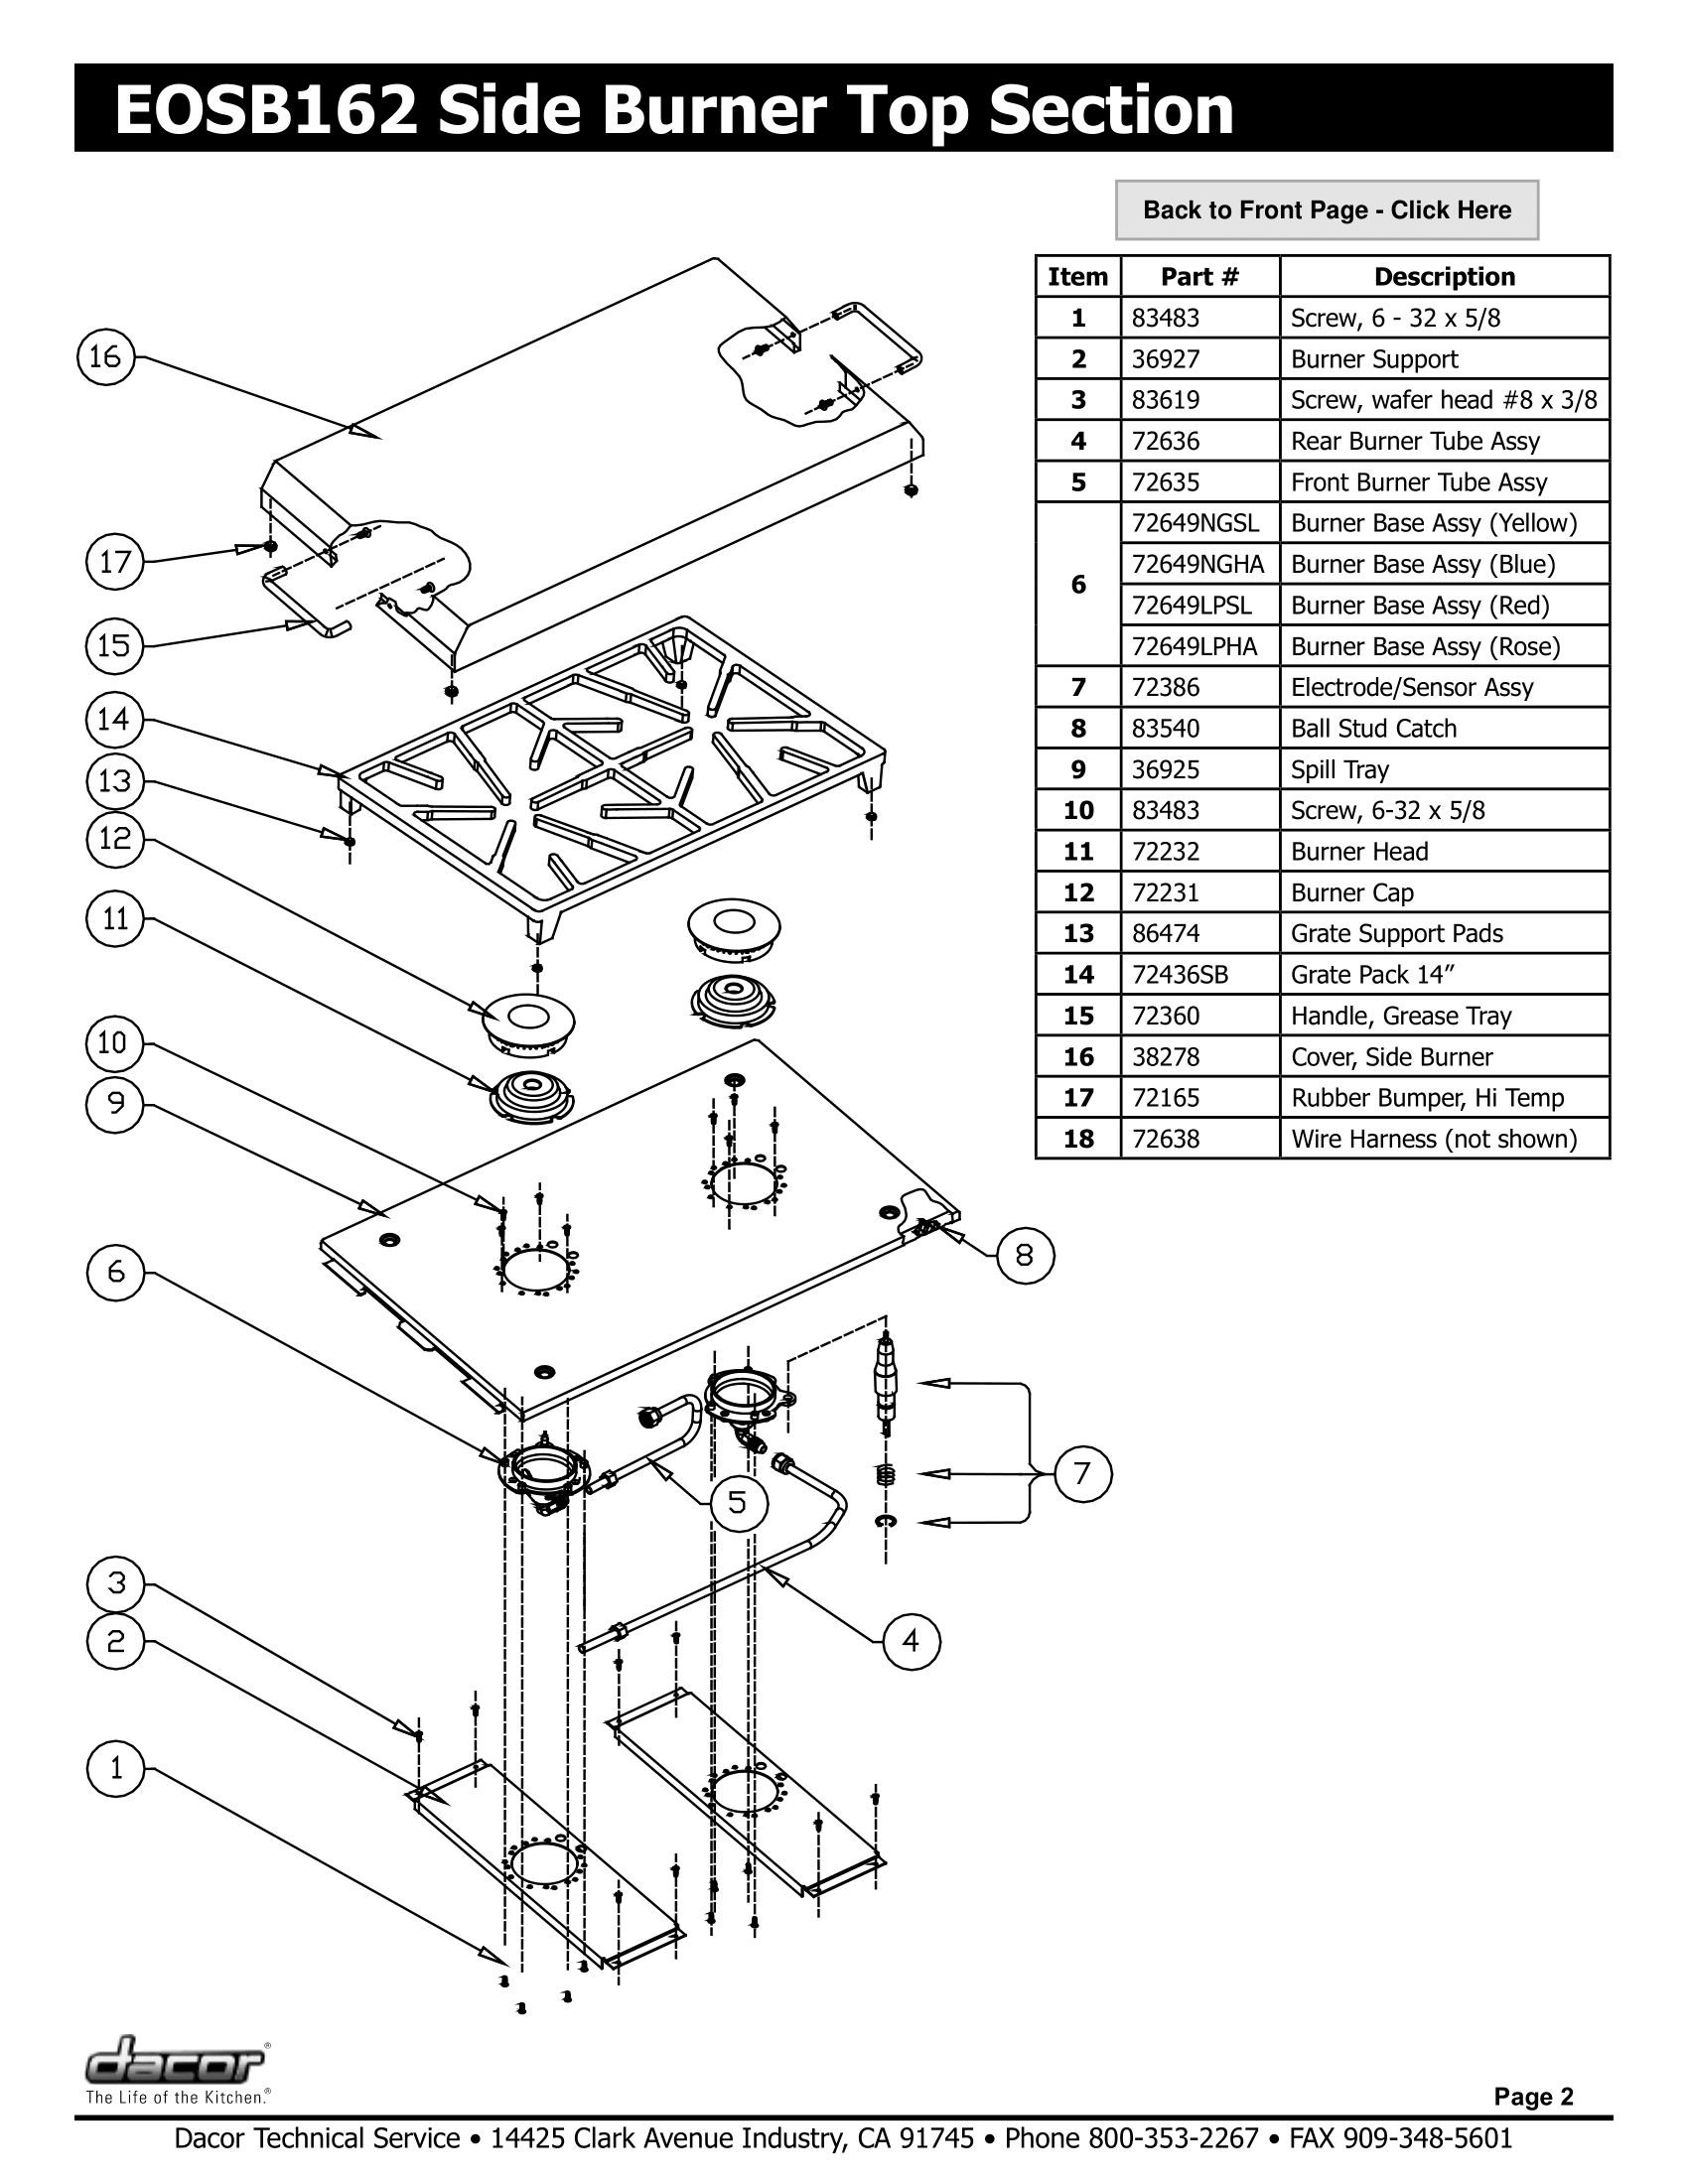 Dacor EOSB162 Top Section Schematic